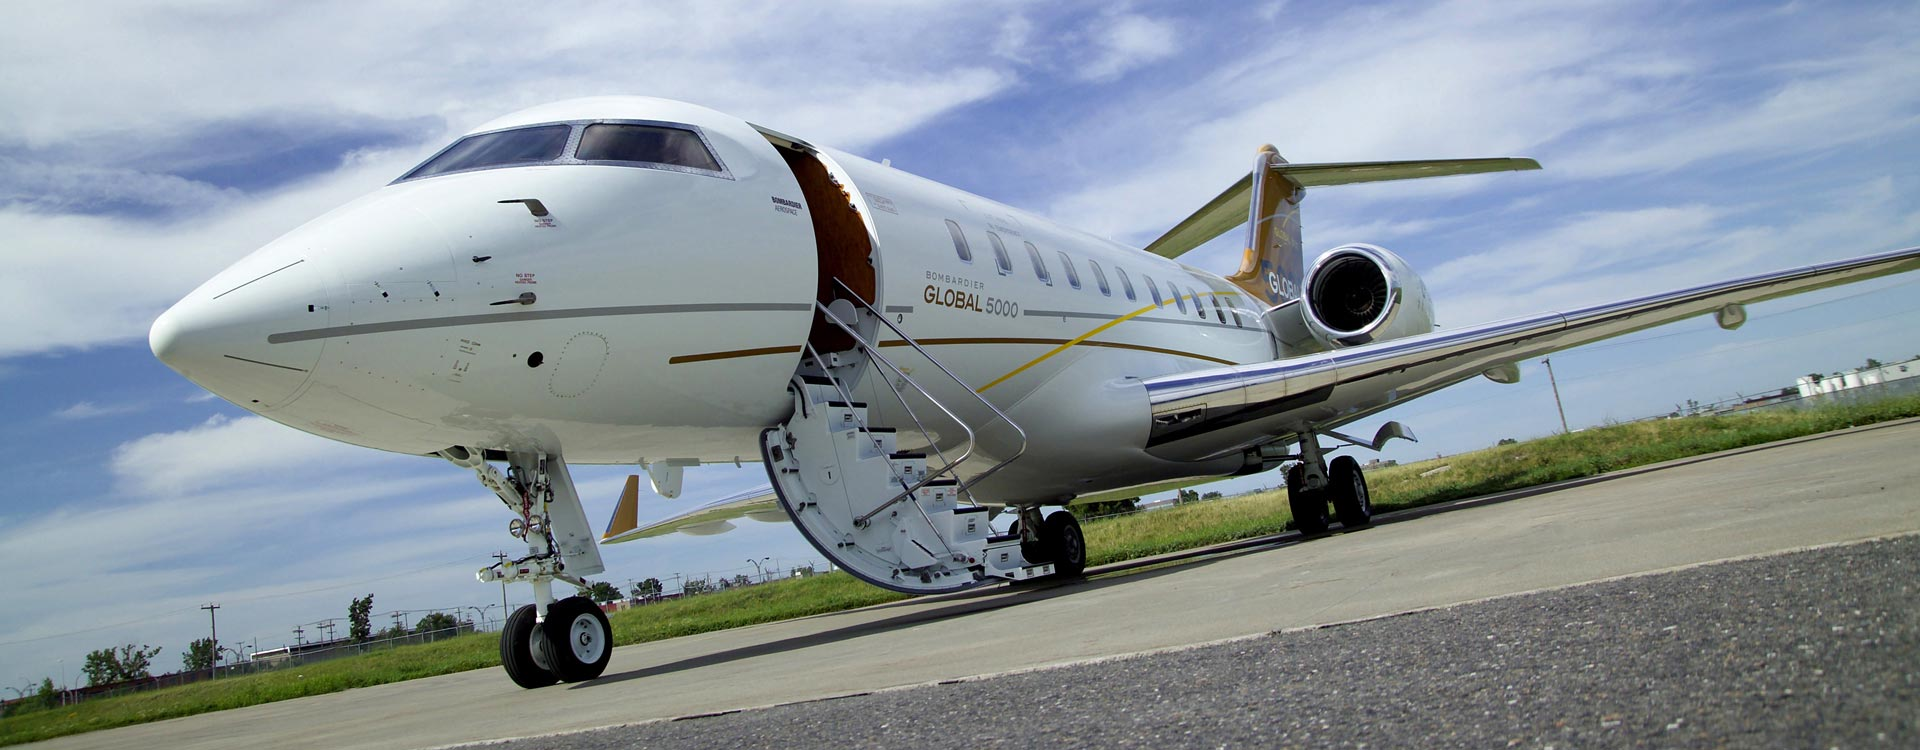 QUALITY AIR CHARTER SERVICE